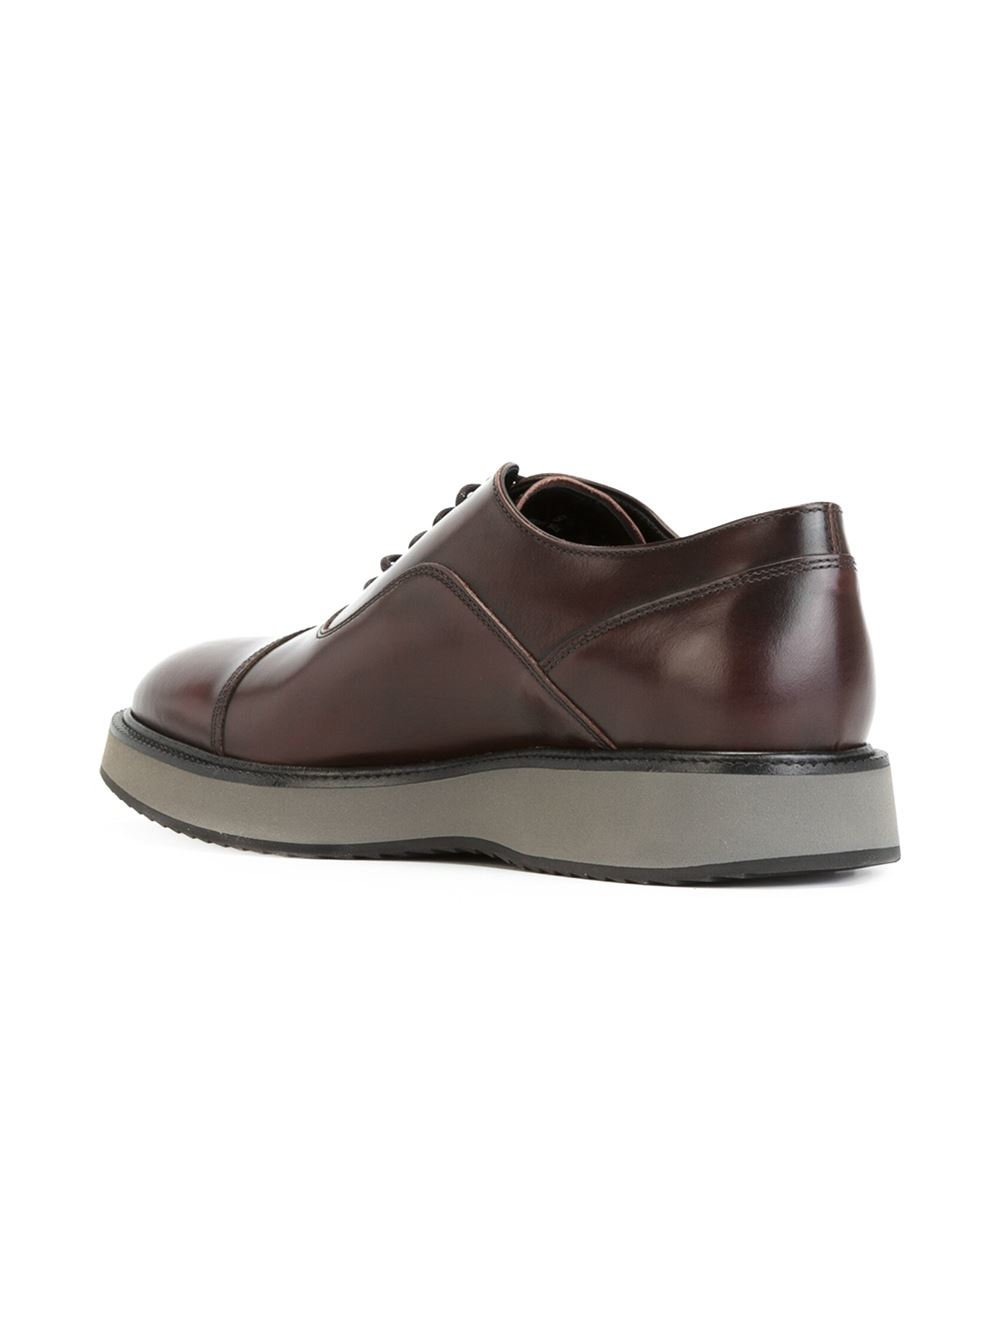 Lyst - Hogan Classic Oxford Shoes In Red For Men